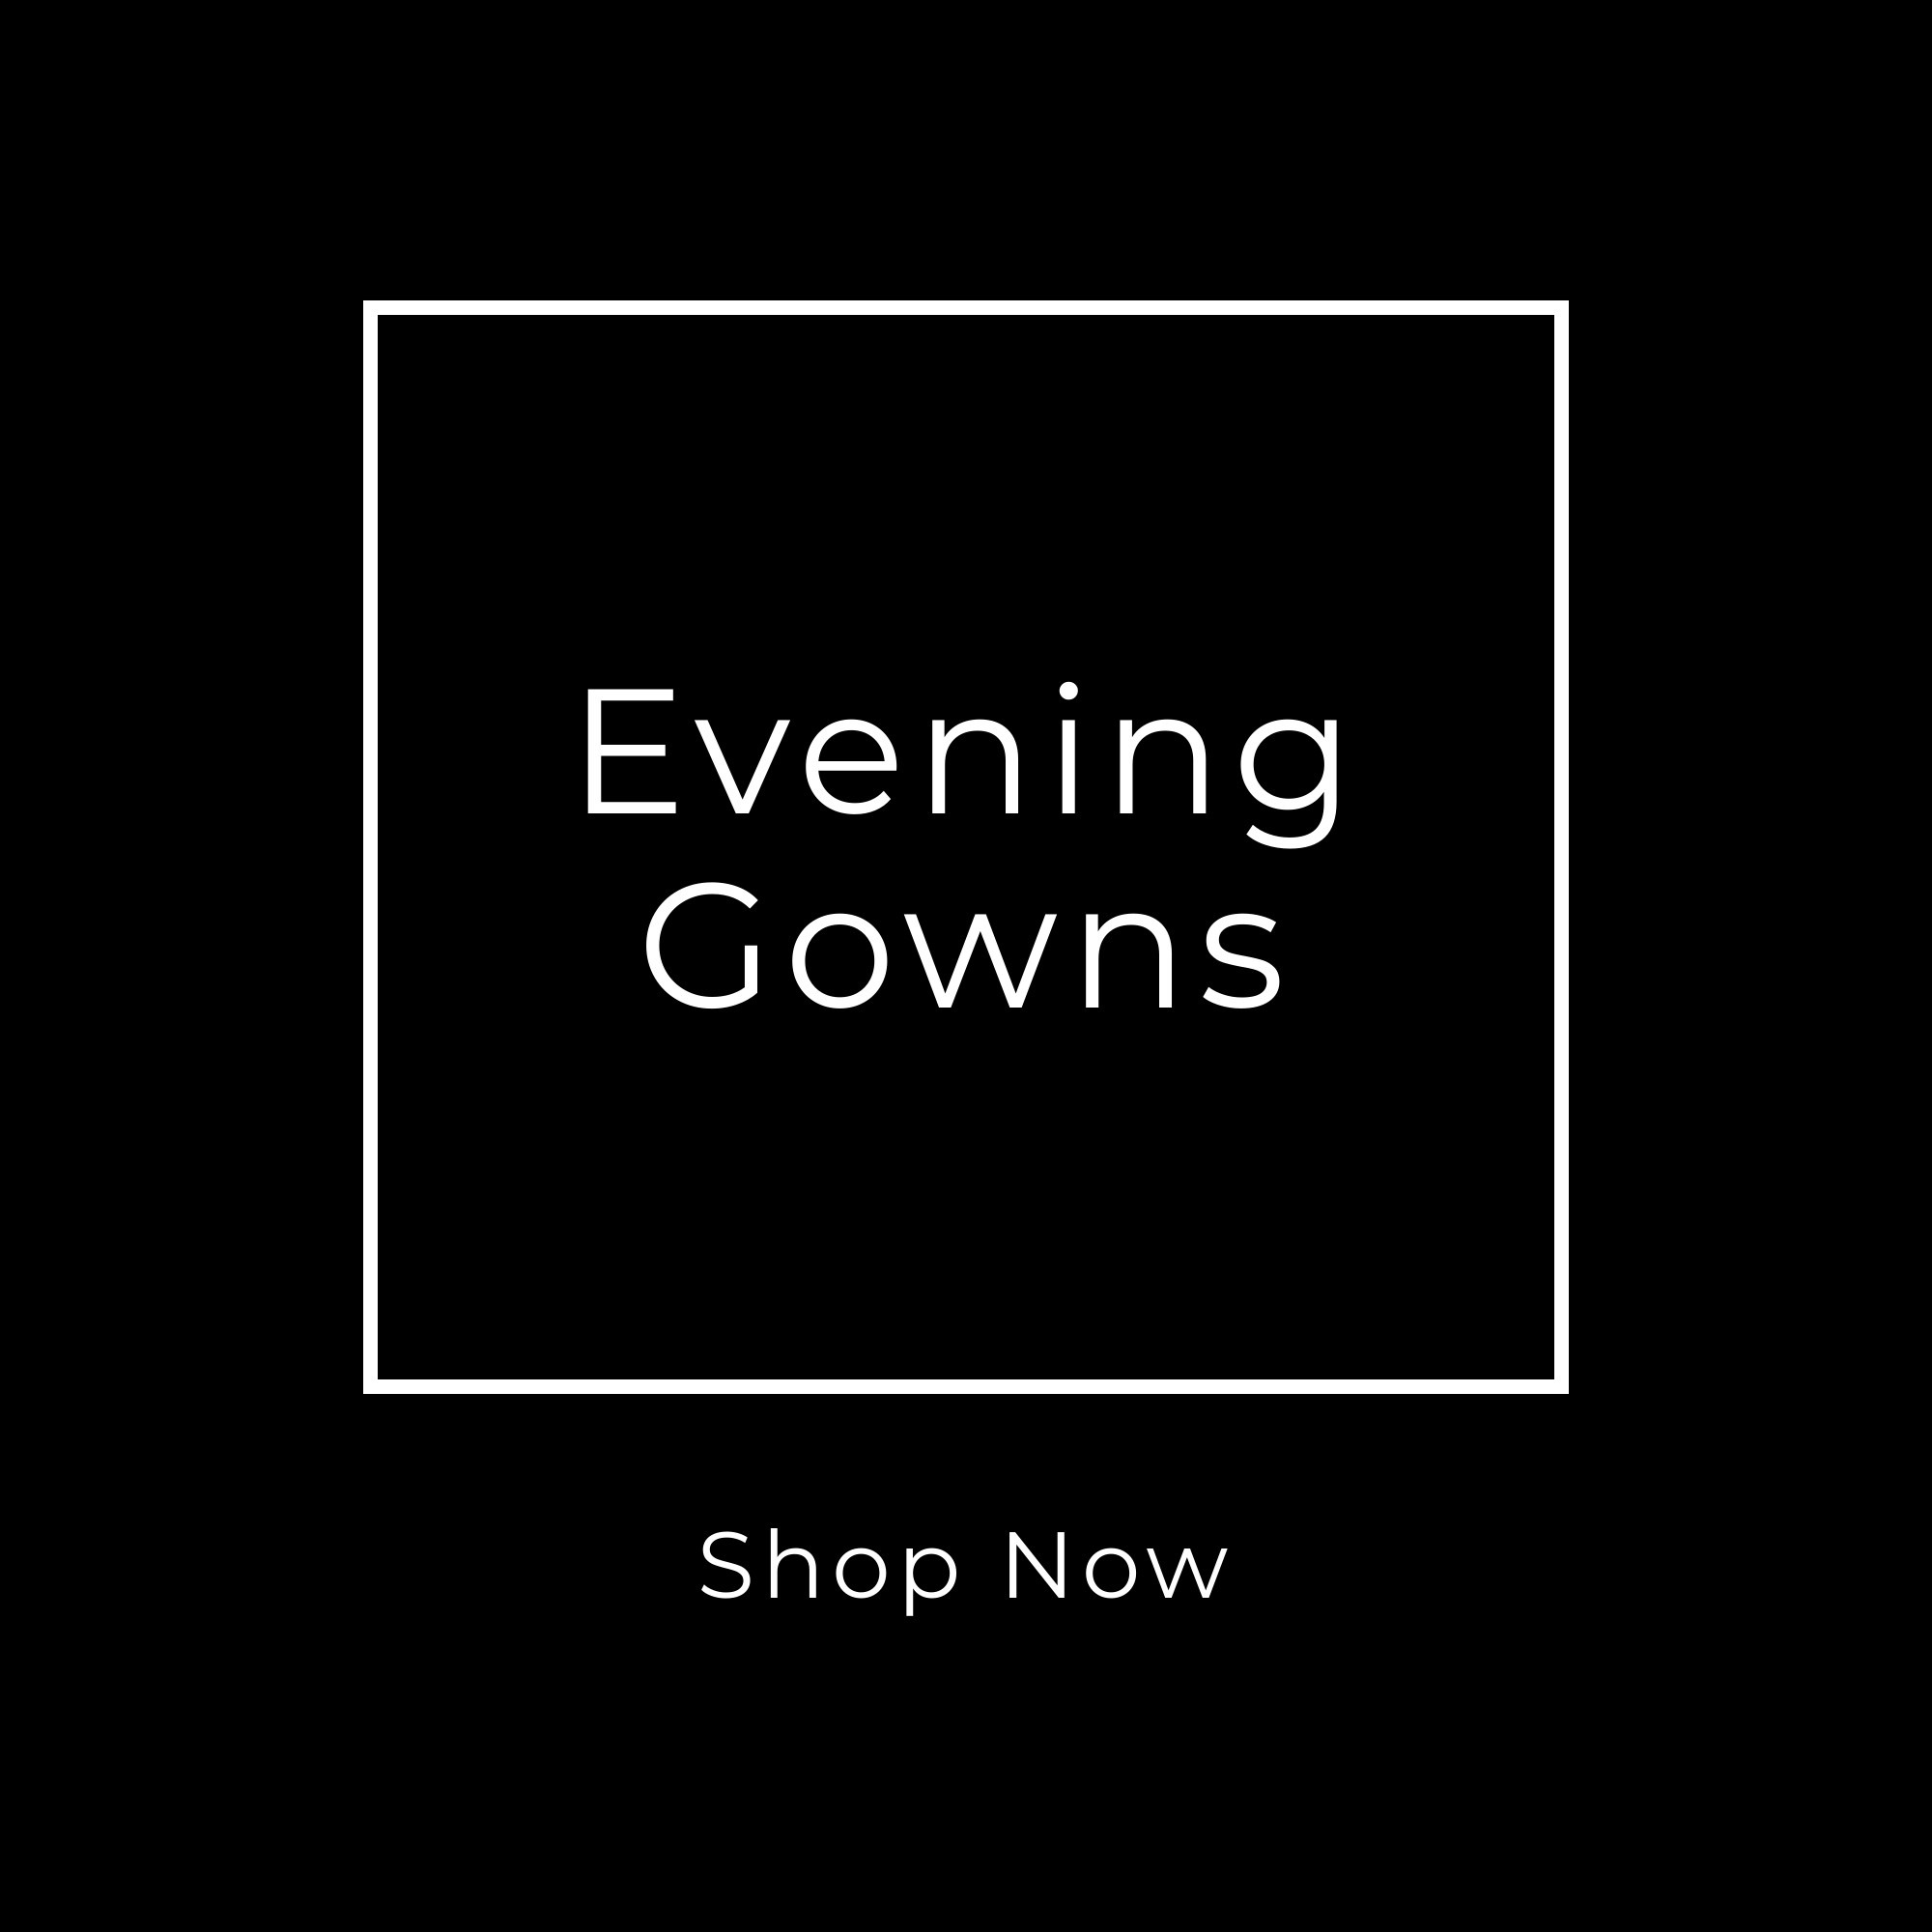 Evening Gowns